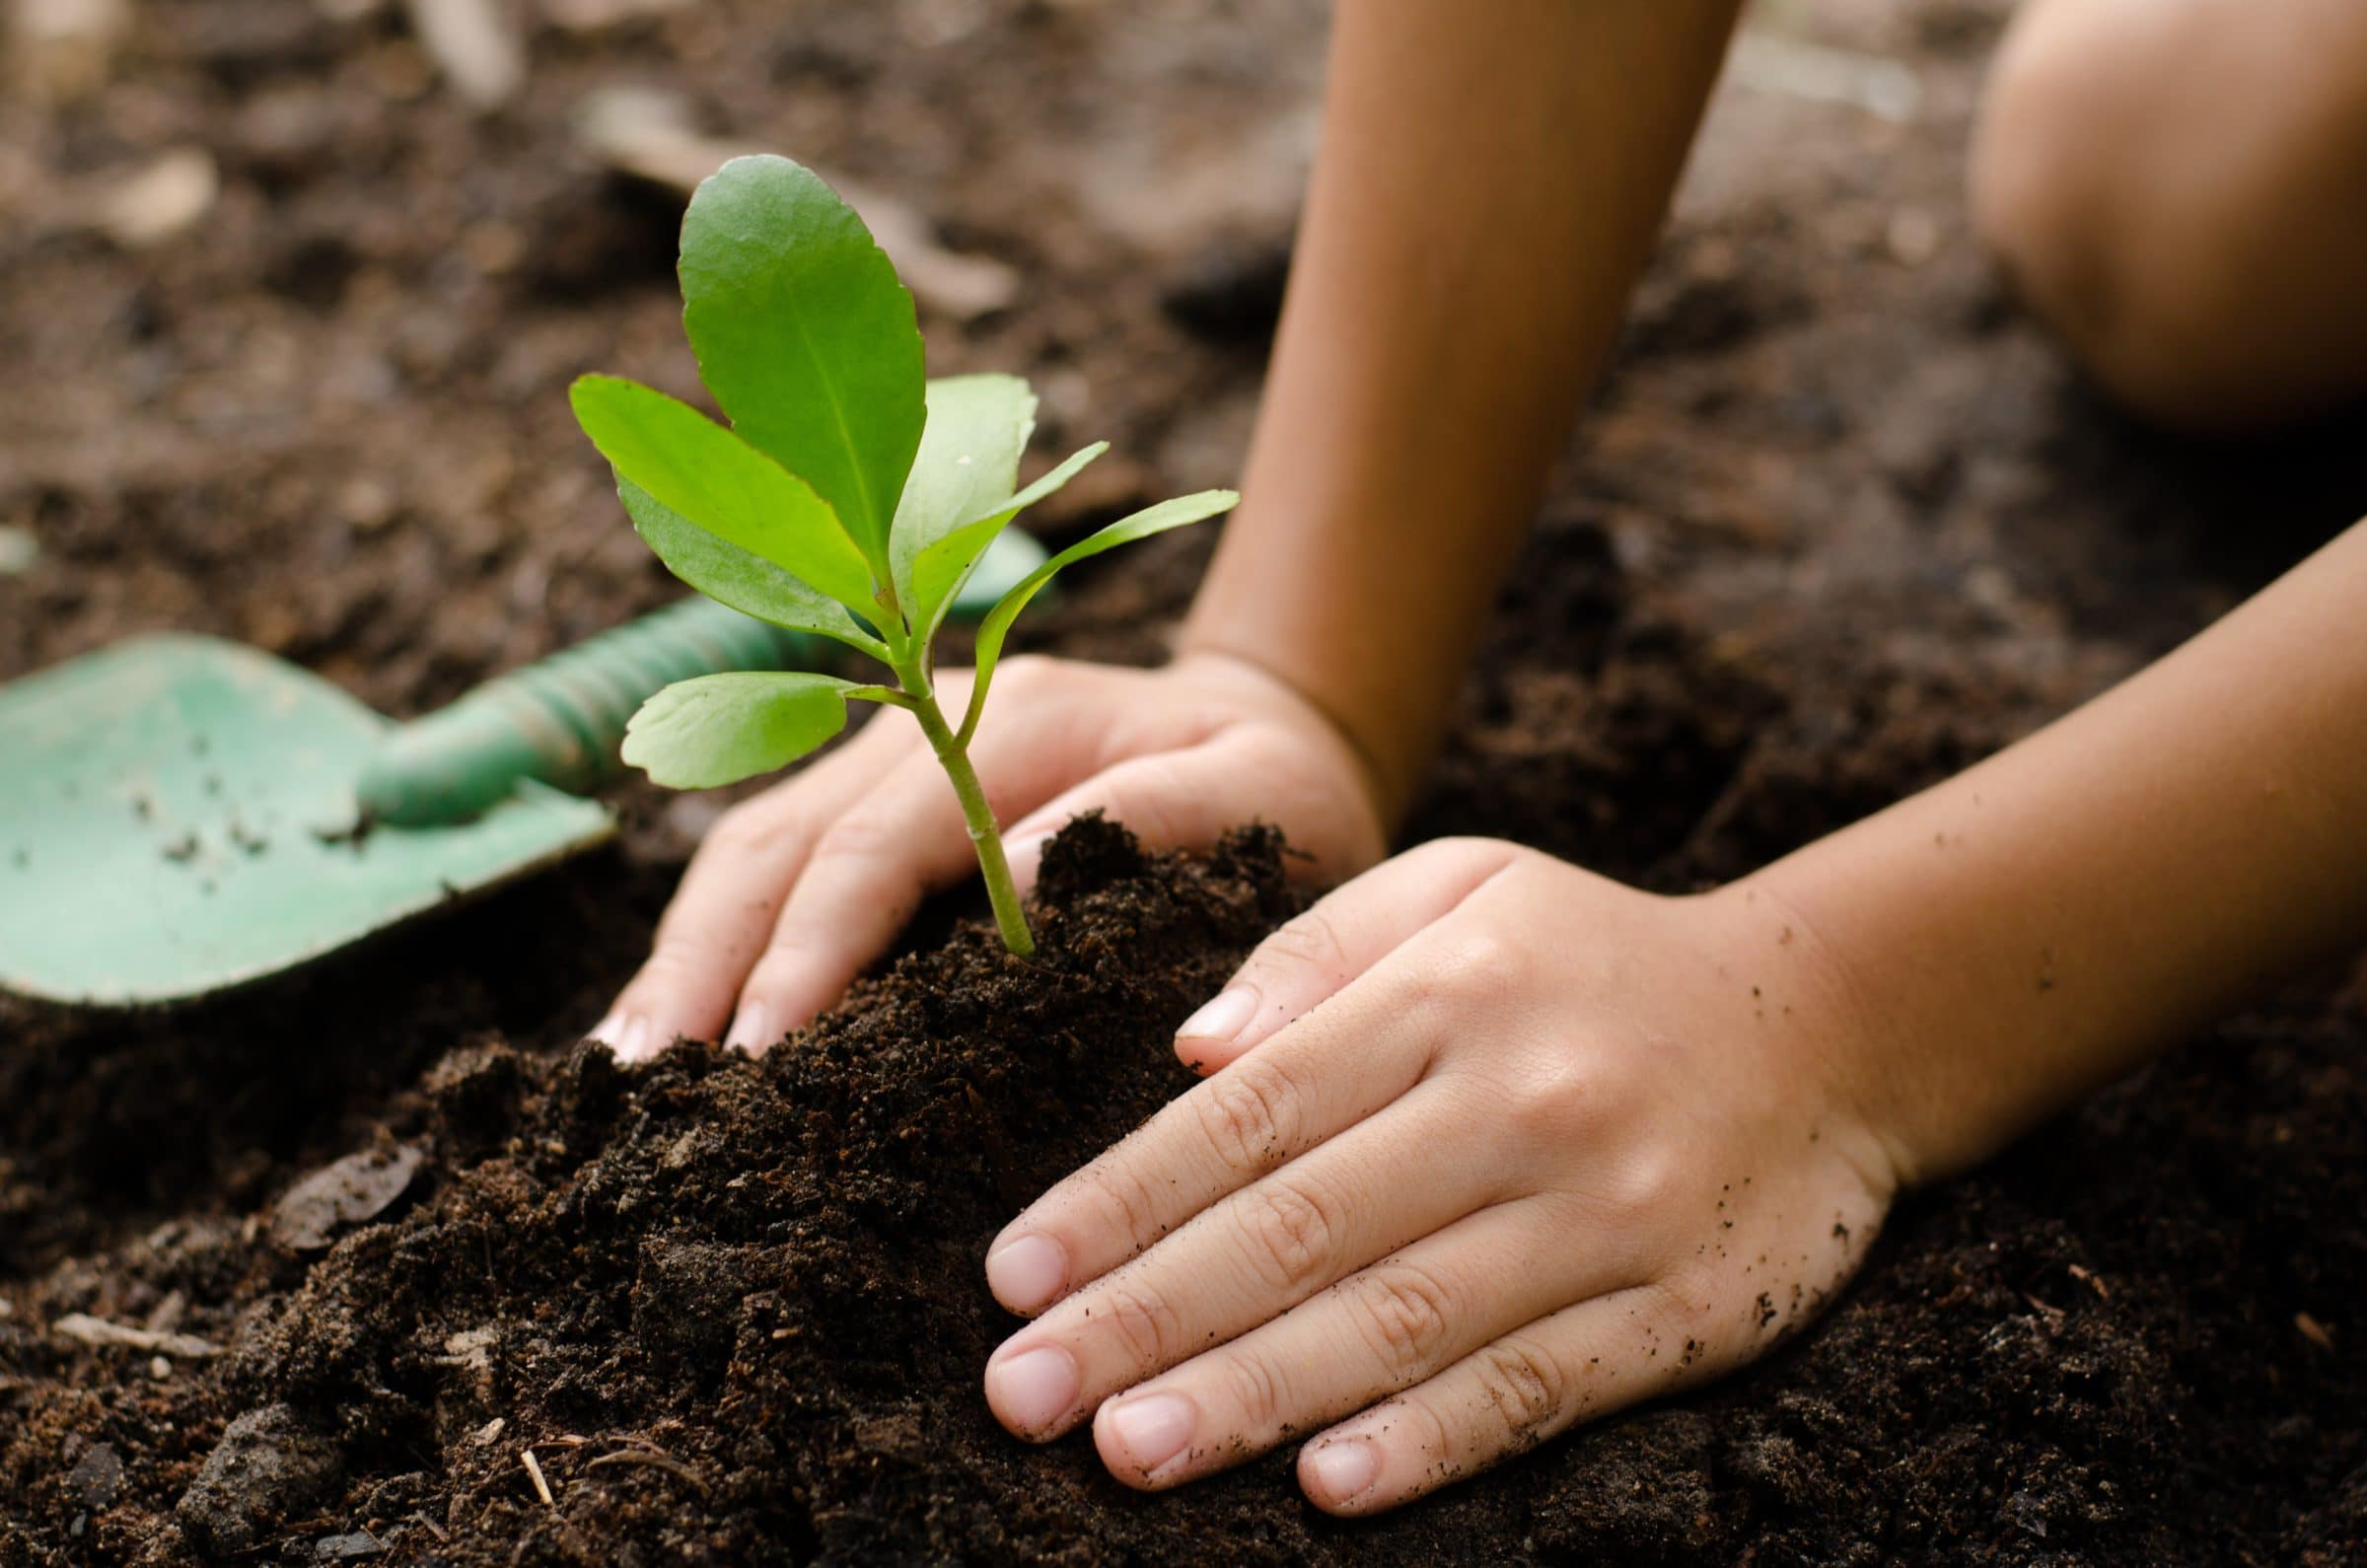 Two hands press into the dirt on either side of a small green plant